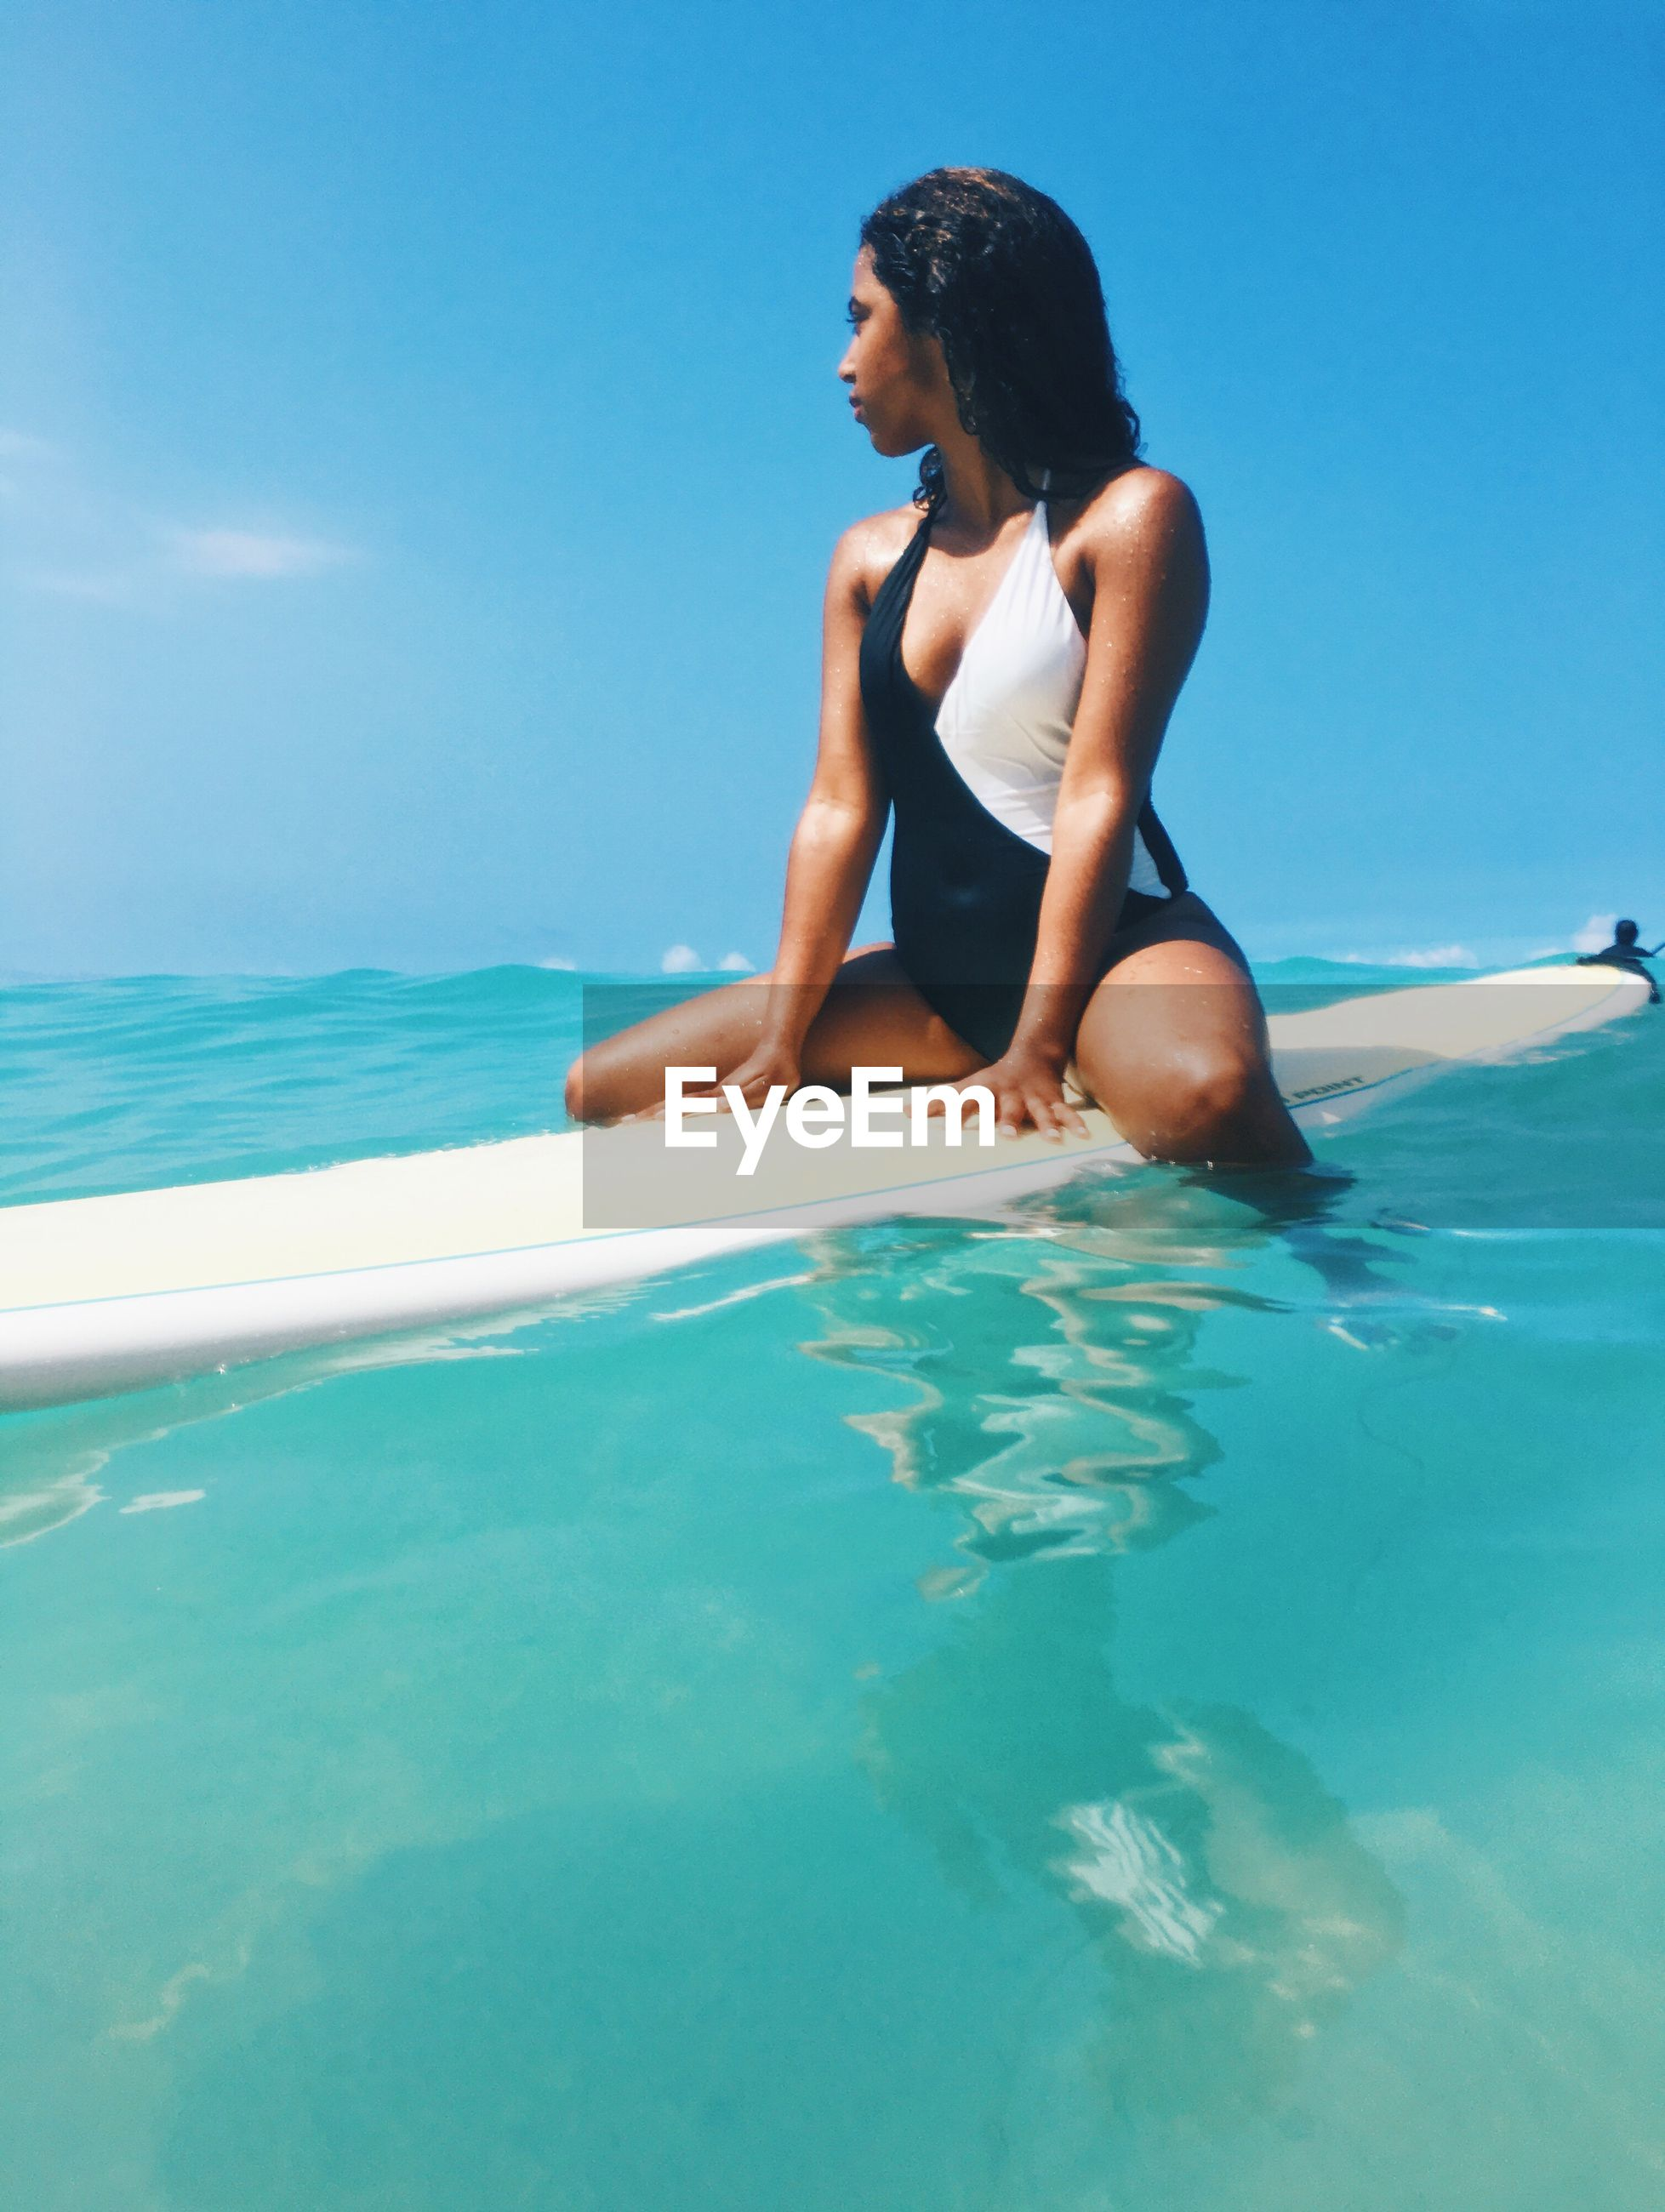 Young woman surfing with surfboard on sea against sky